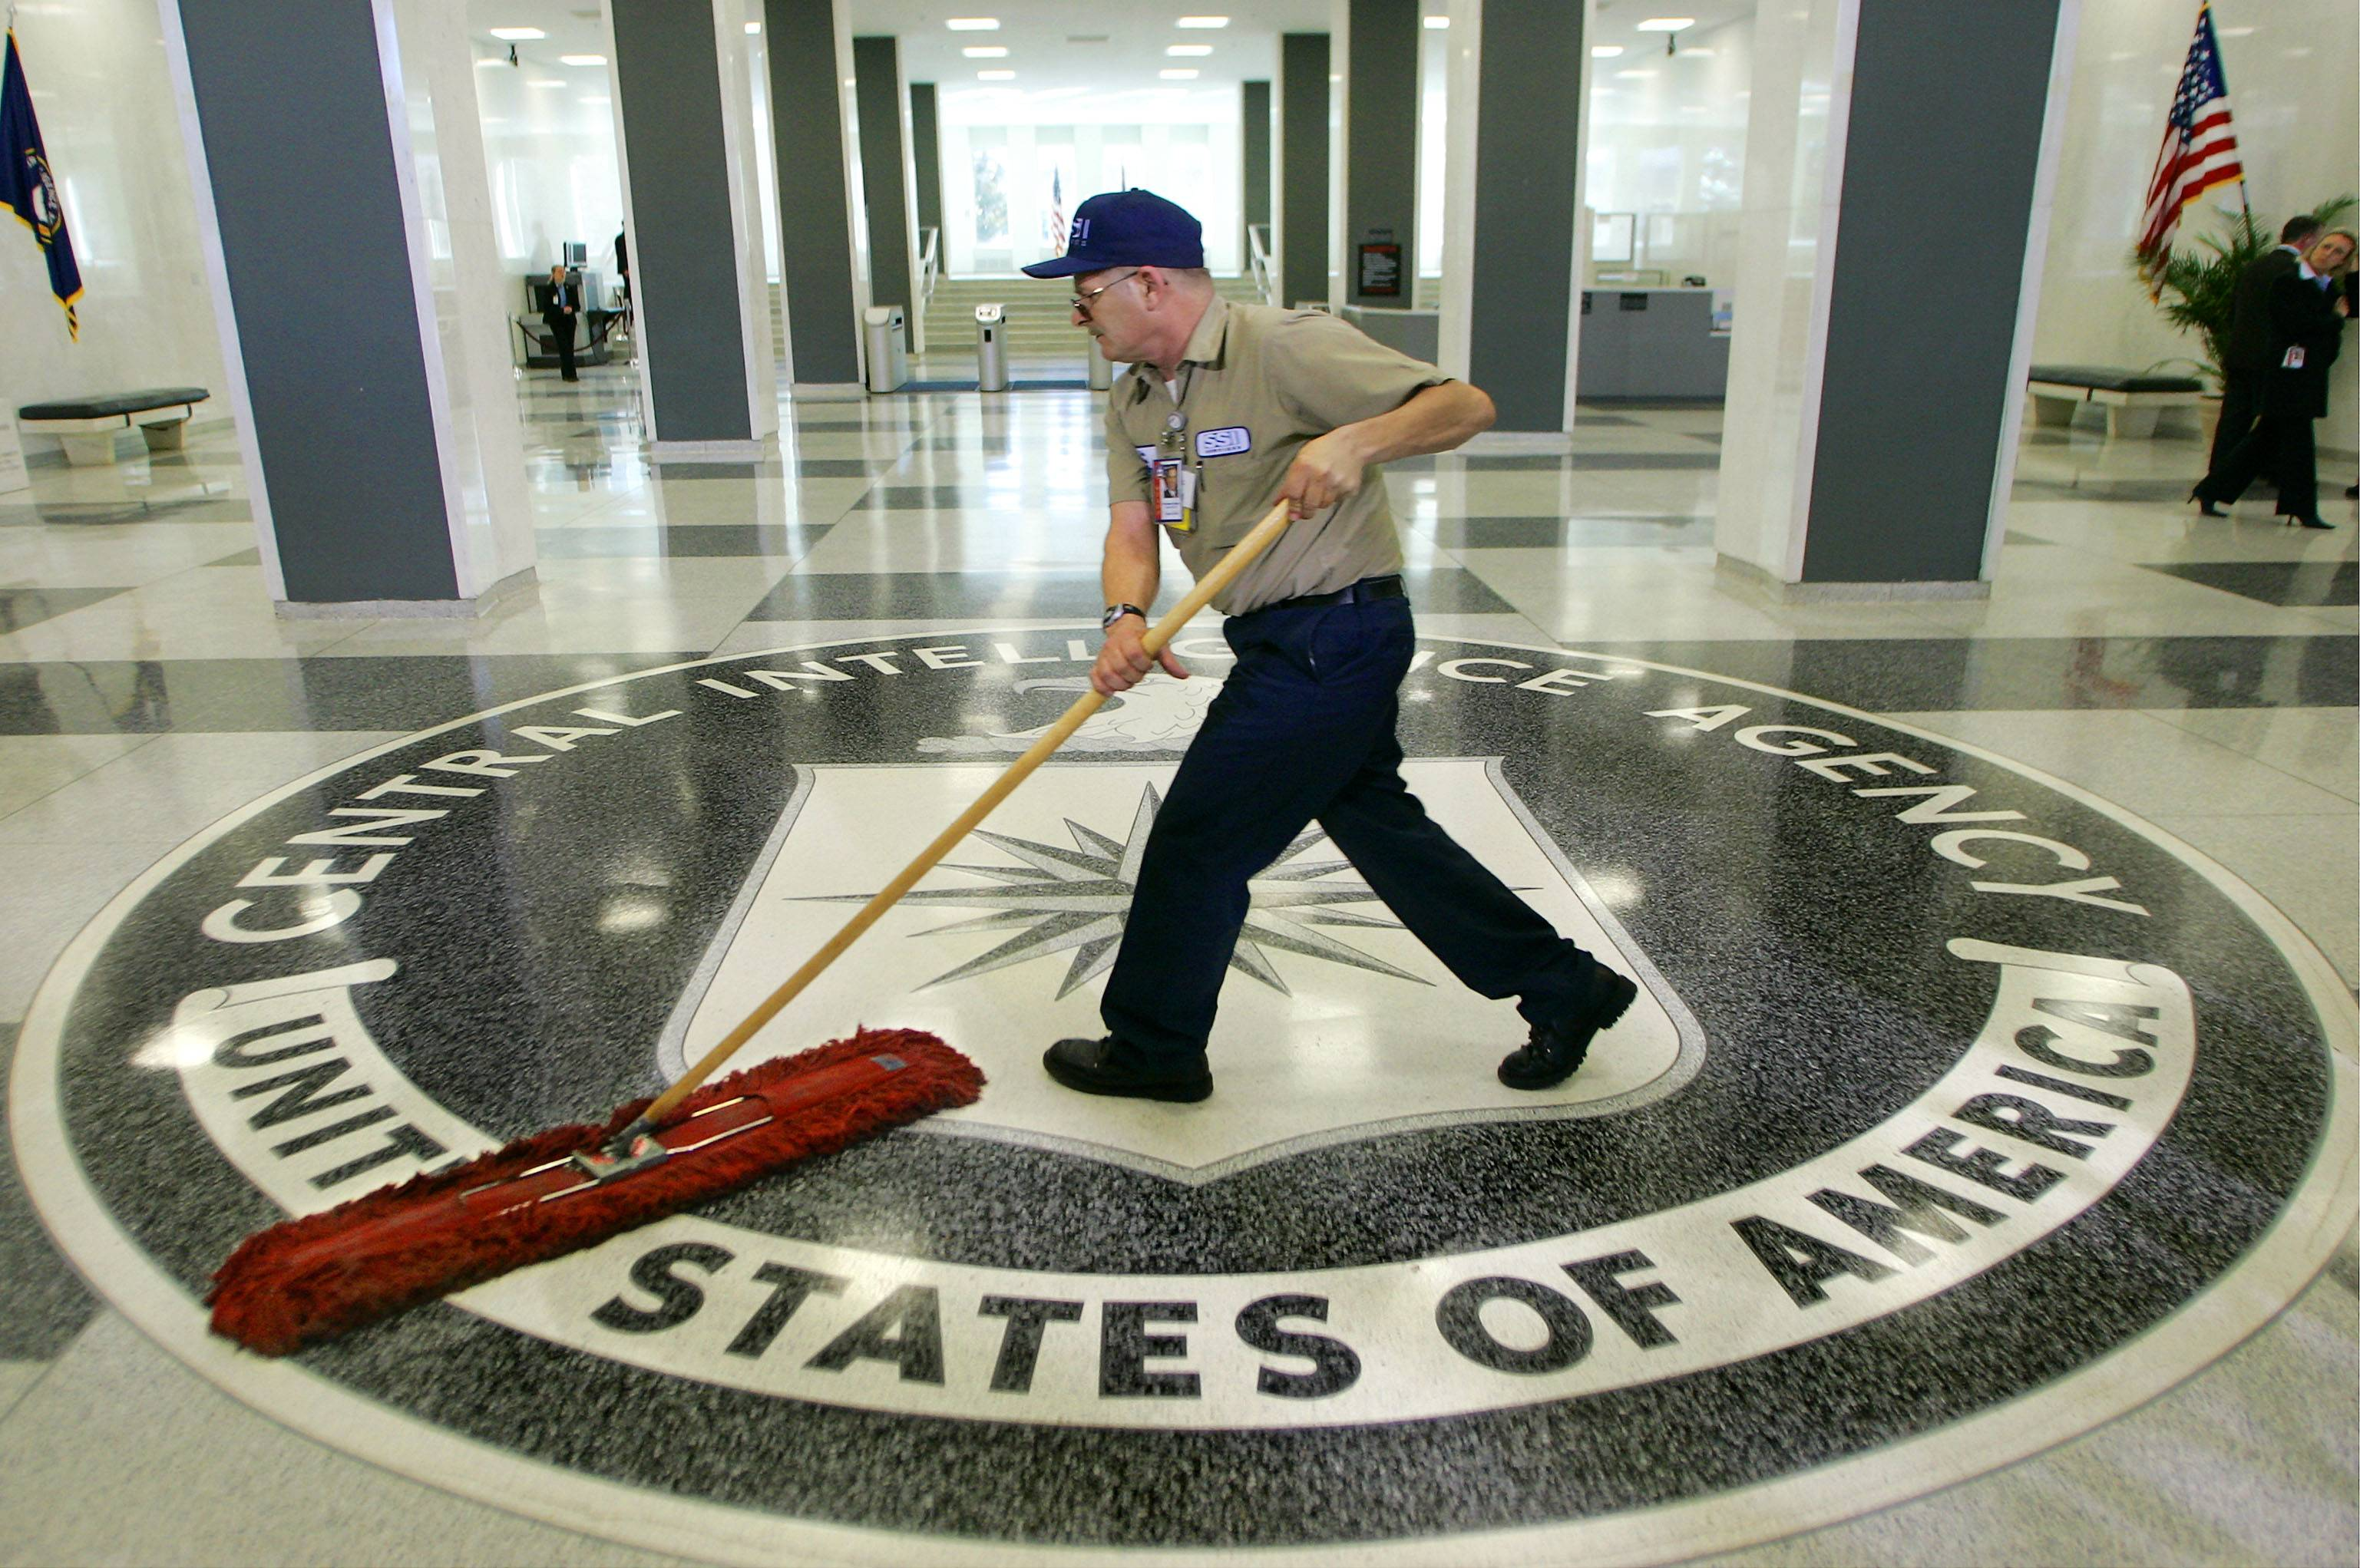 A workman quickly slides a dust mop over the floor at the Central Intelligence Agency headquarters in Langley, Va., near Washington, in this file photo. About a dozen former CIA officials named in a classified Senate report on decade-old agency interrogation practices were notified in recent days that they would be able to review parts of the document in a secure room in suburban Washington after signing a secrecy agreement. Then, on Friday, July 25, many were told they would not be able to see it, after all.